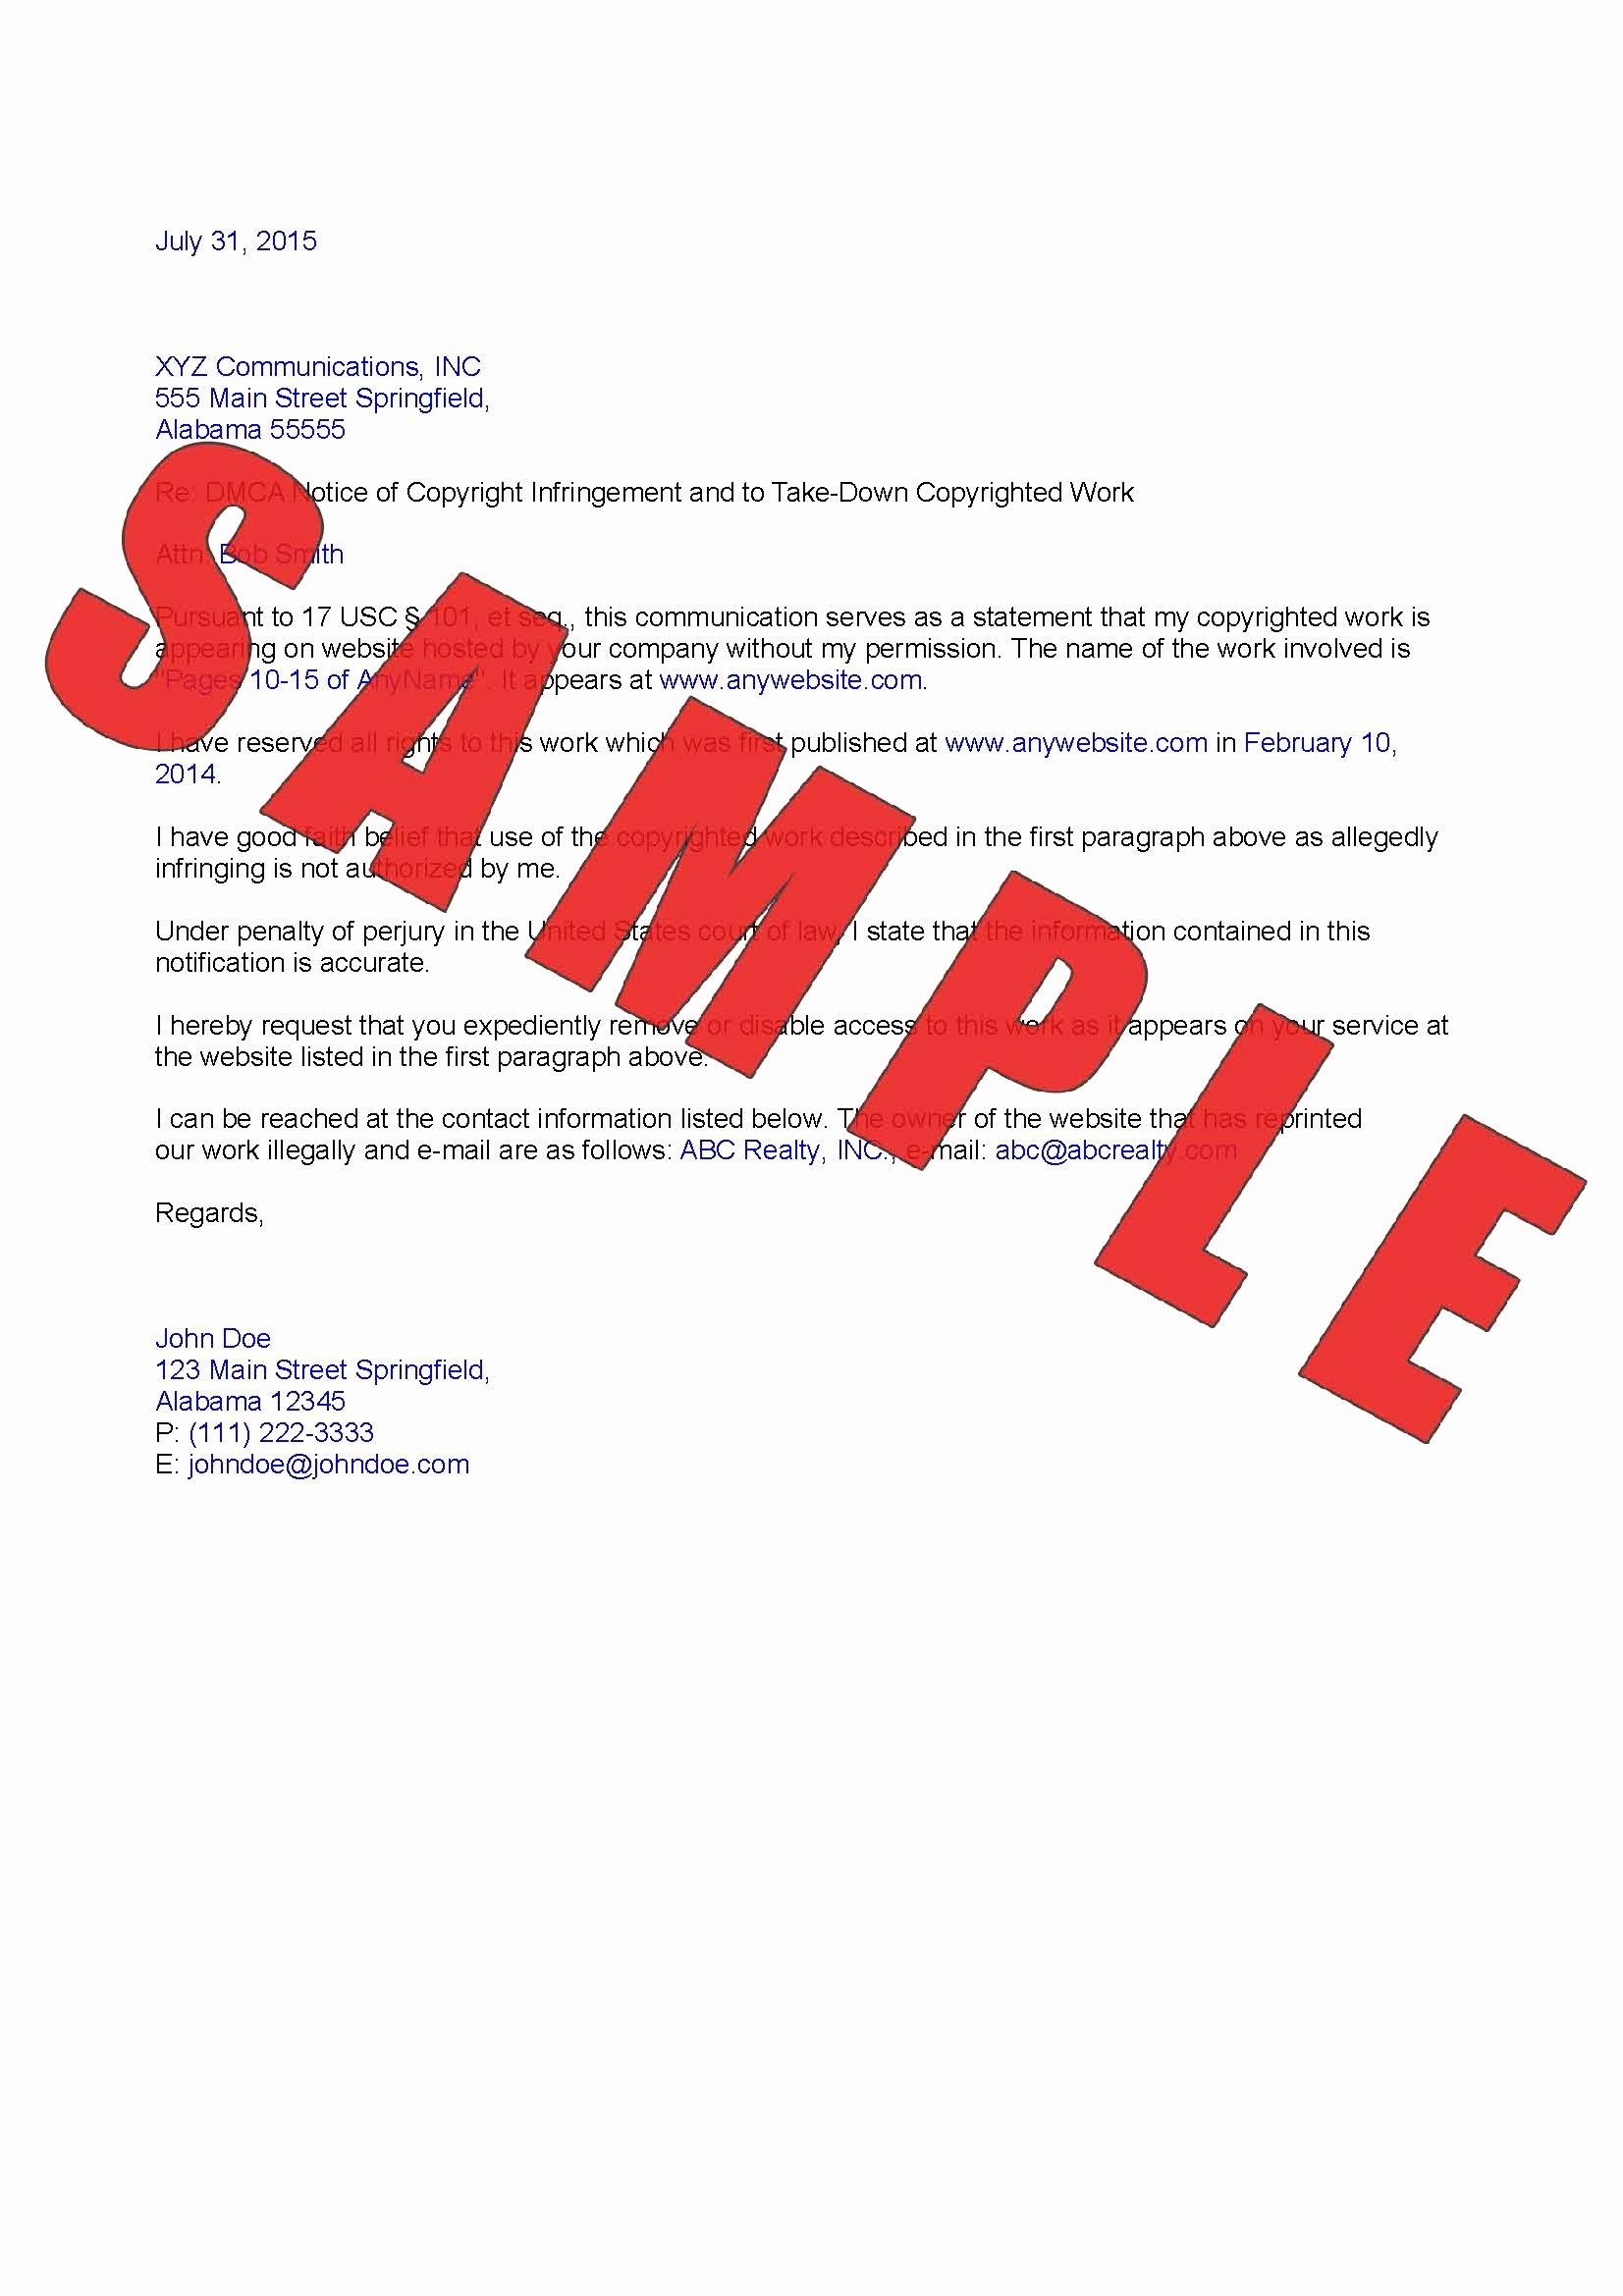 Dmca Takedown Notice Template Awesome Copyright Infringement Take Down Notice to isp Custom